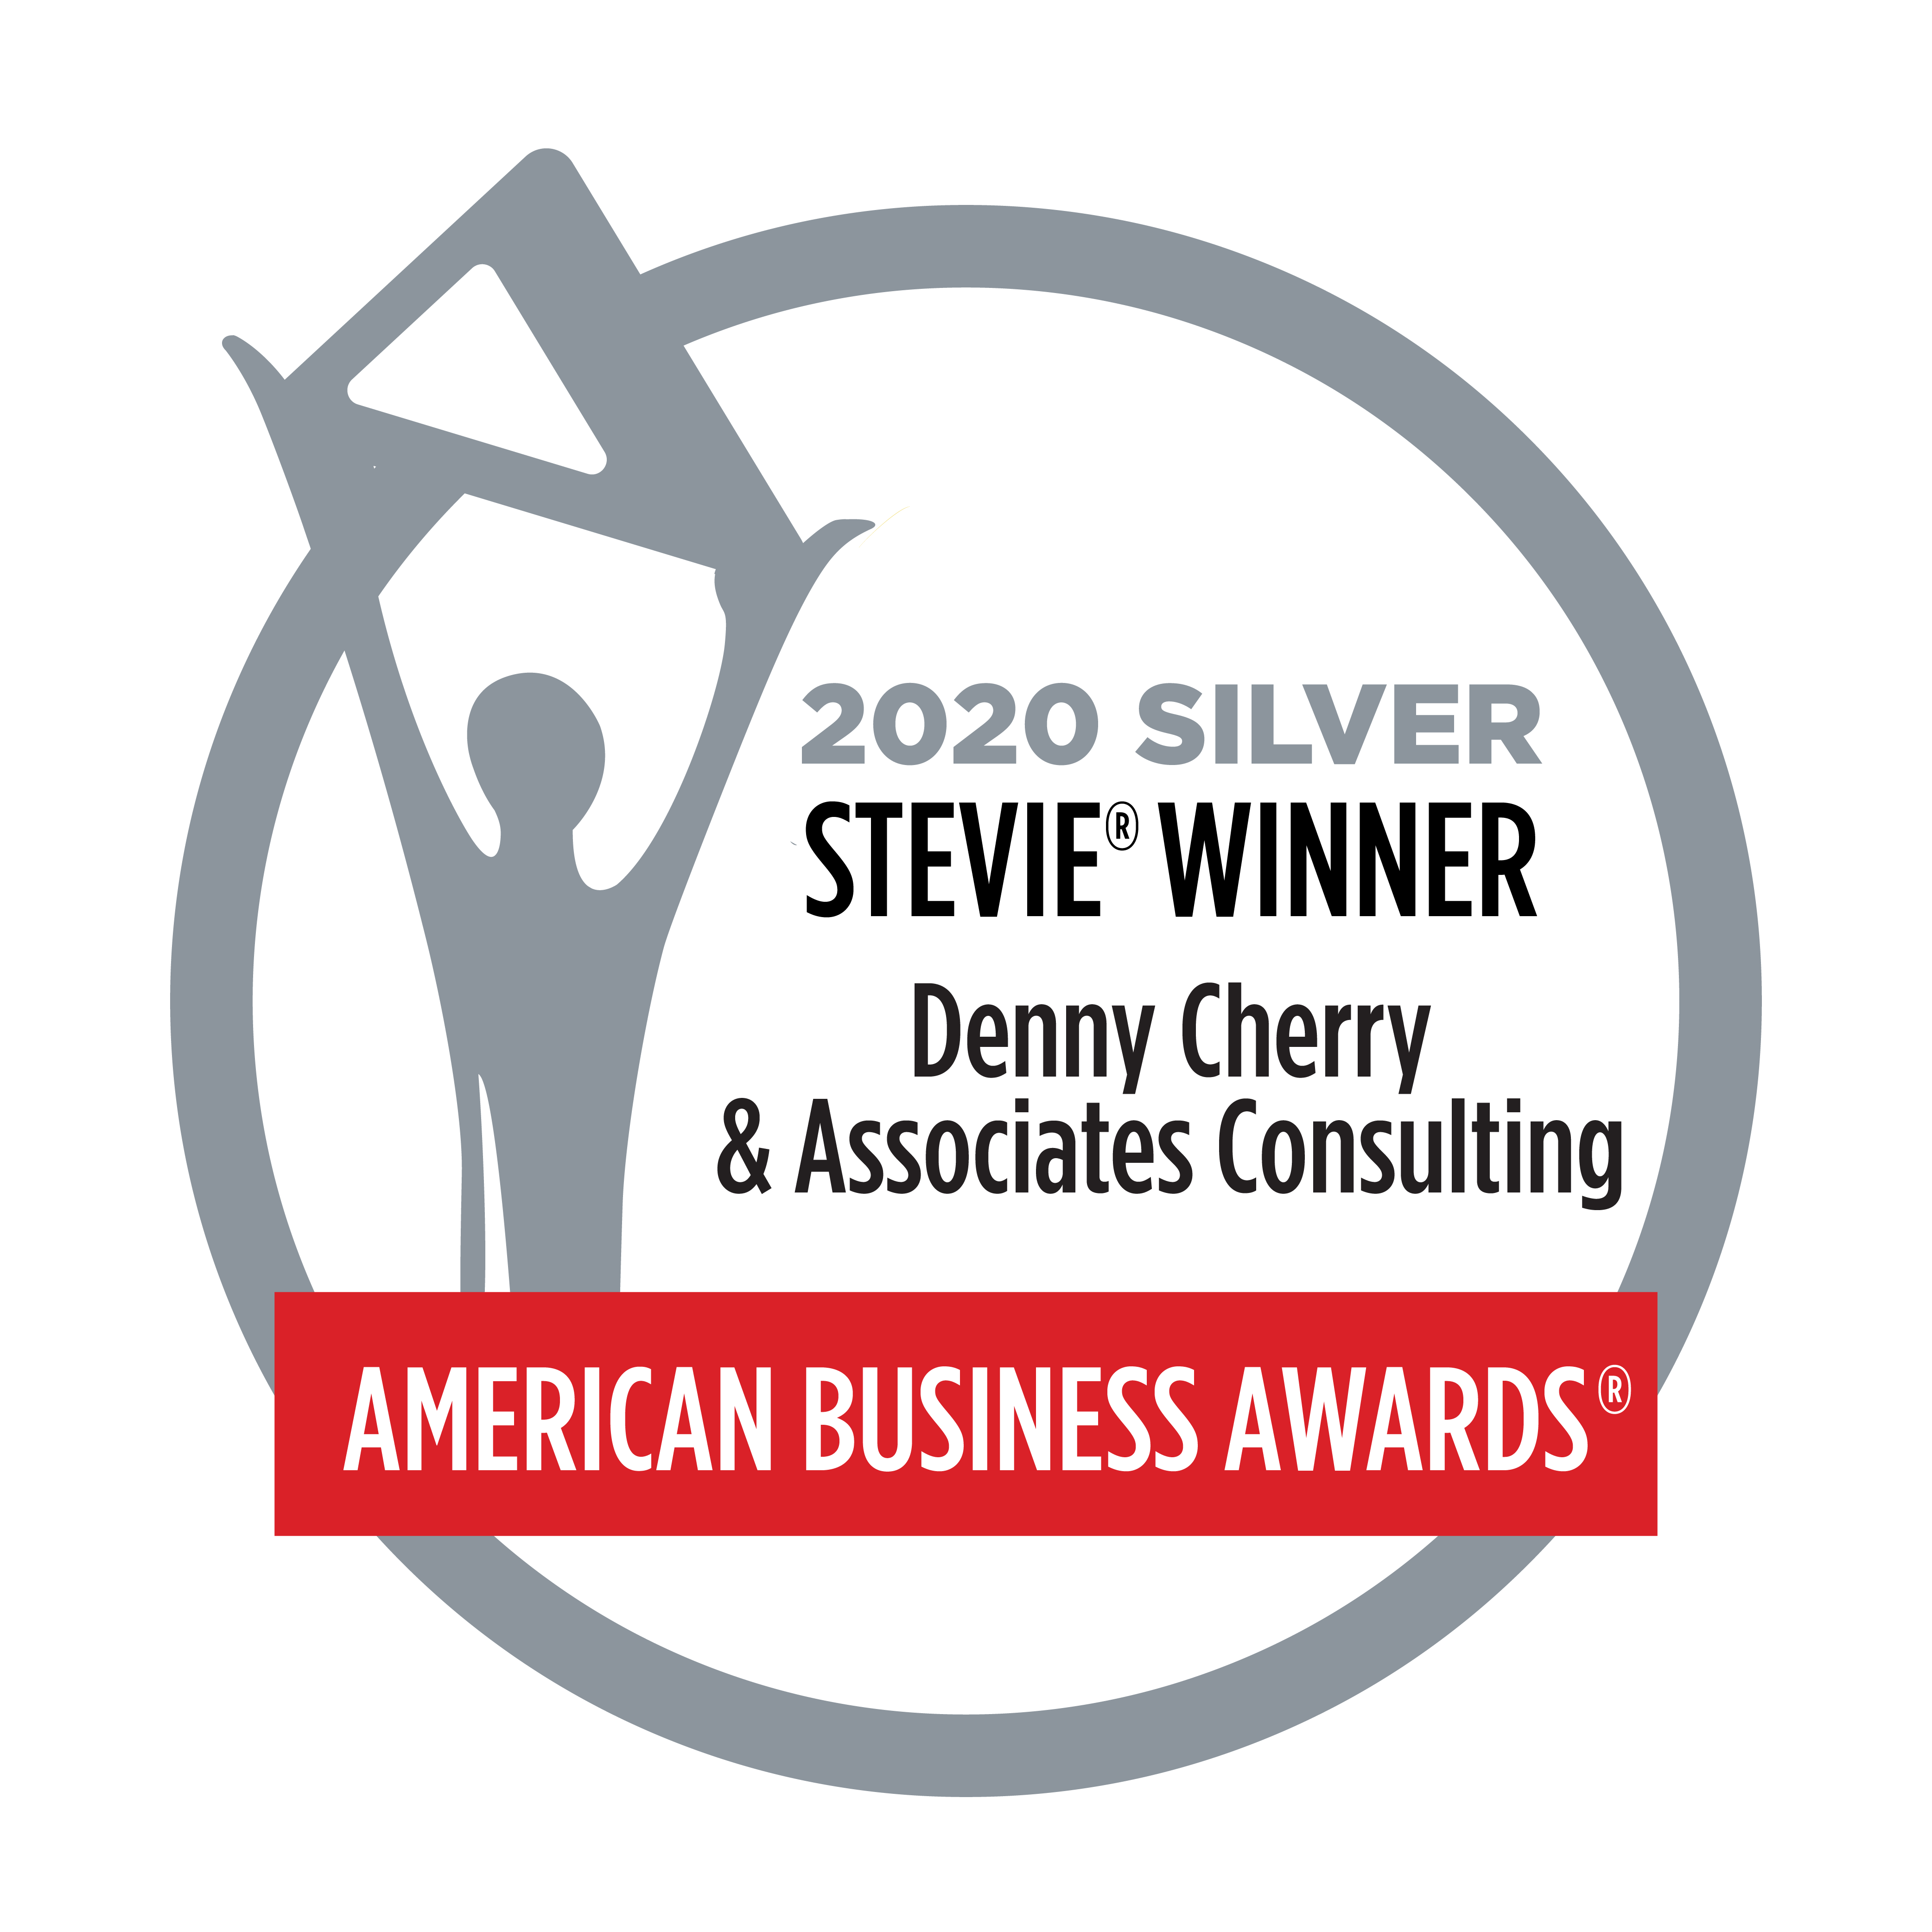 American Business Awards Silver Award